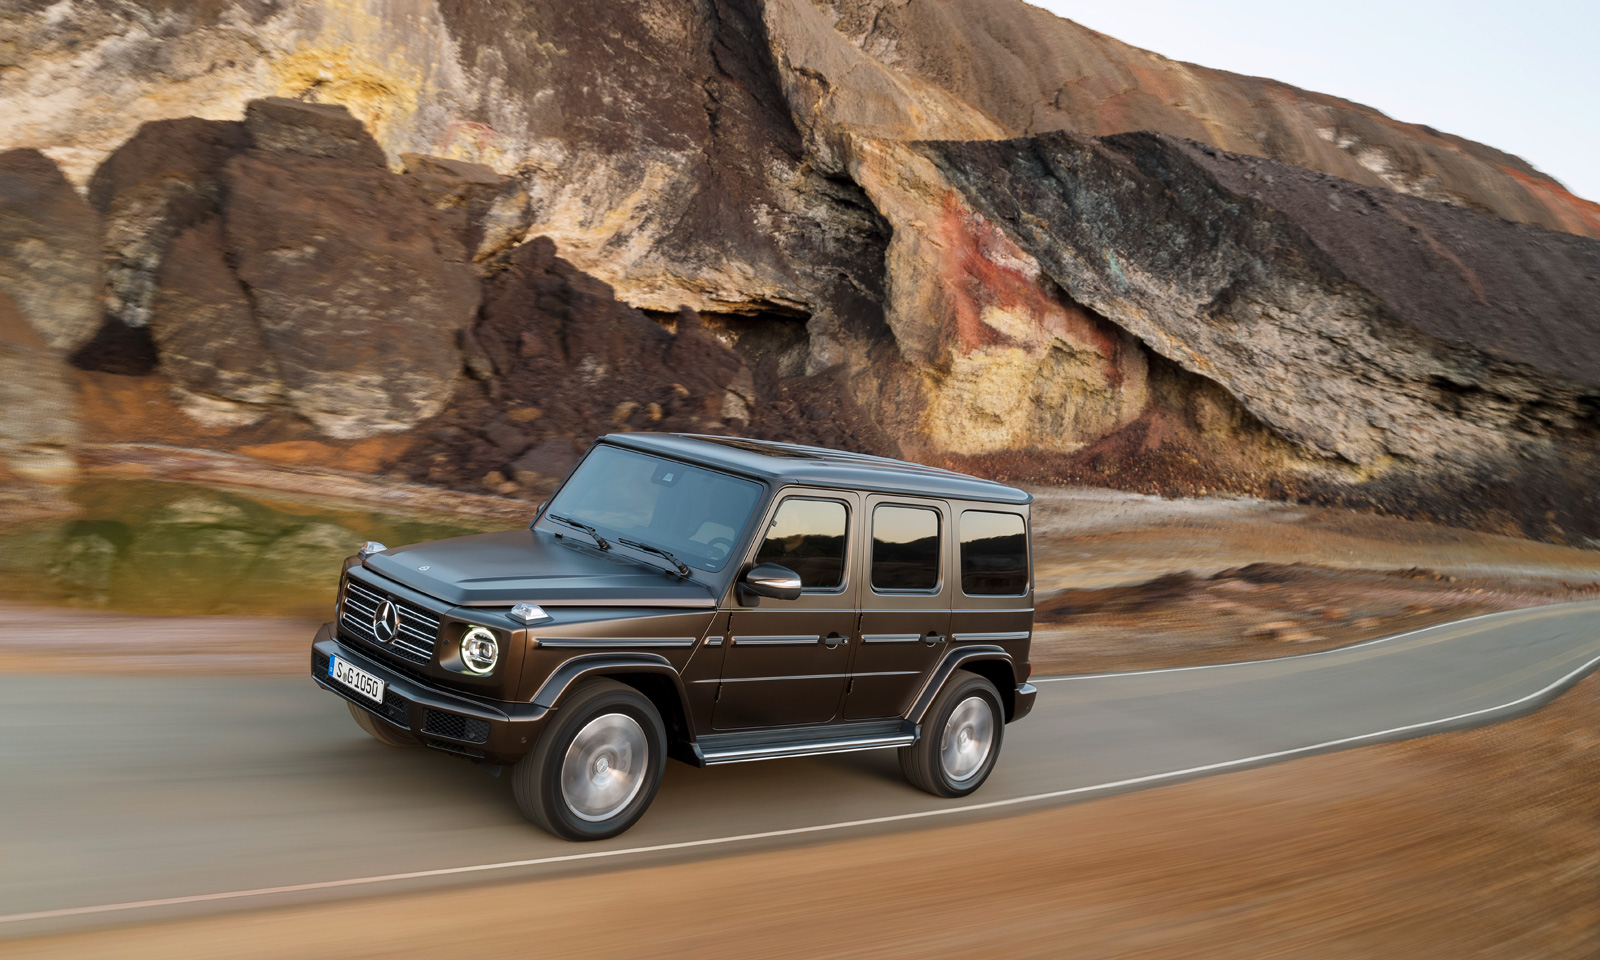 features for car show auto benz sale and trend pictures reviews jeep gclass price mercedes info photos u